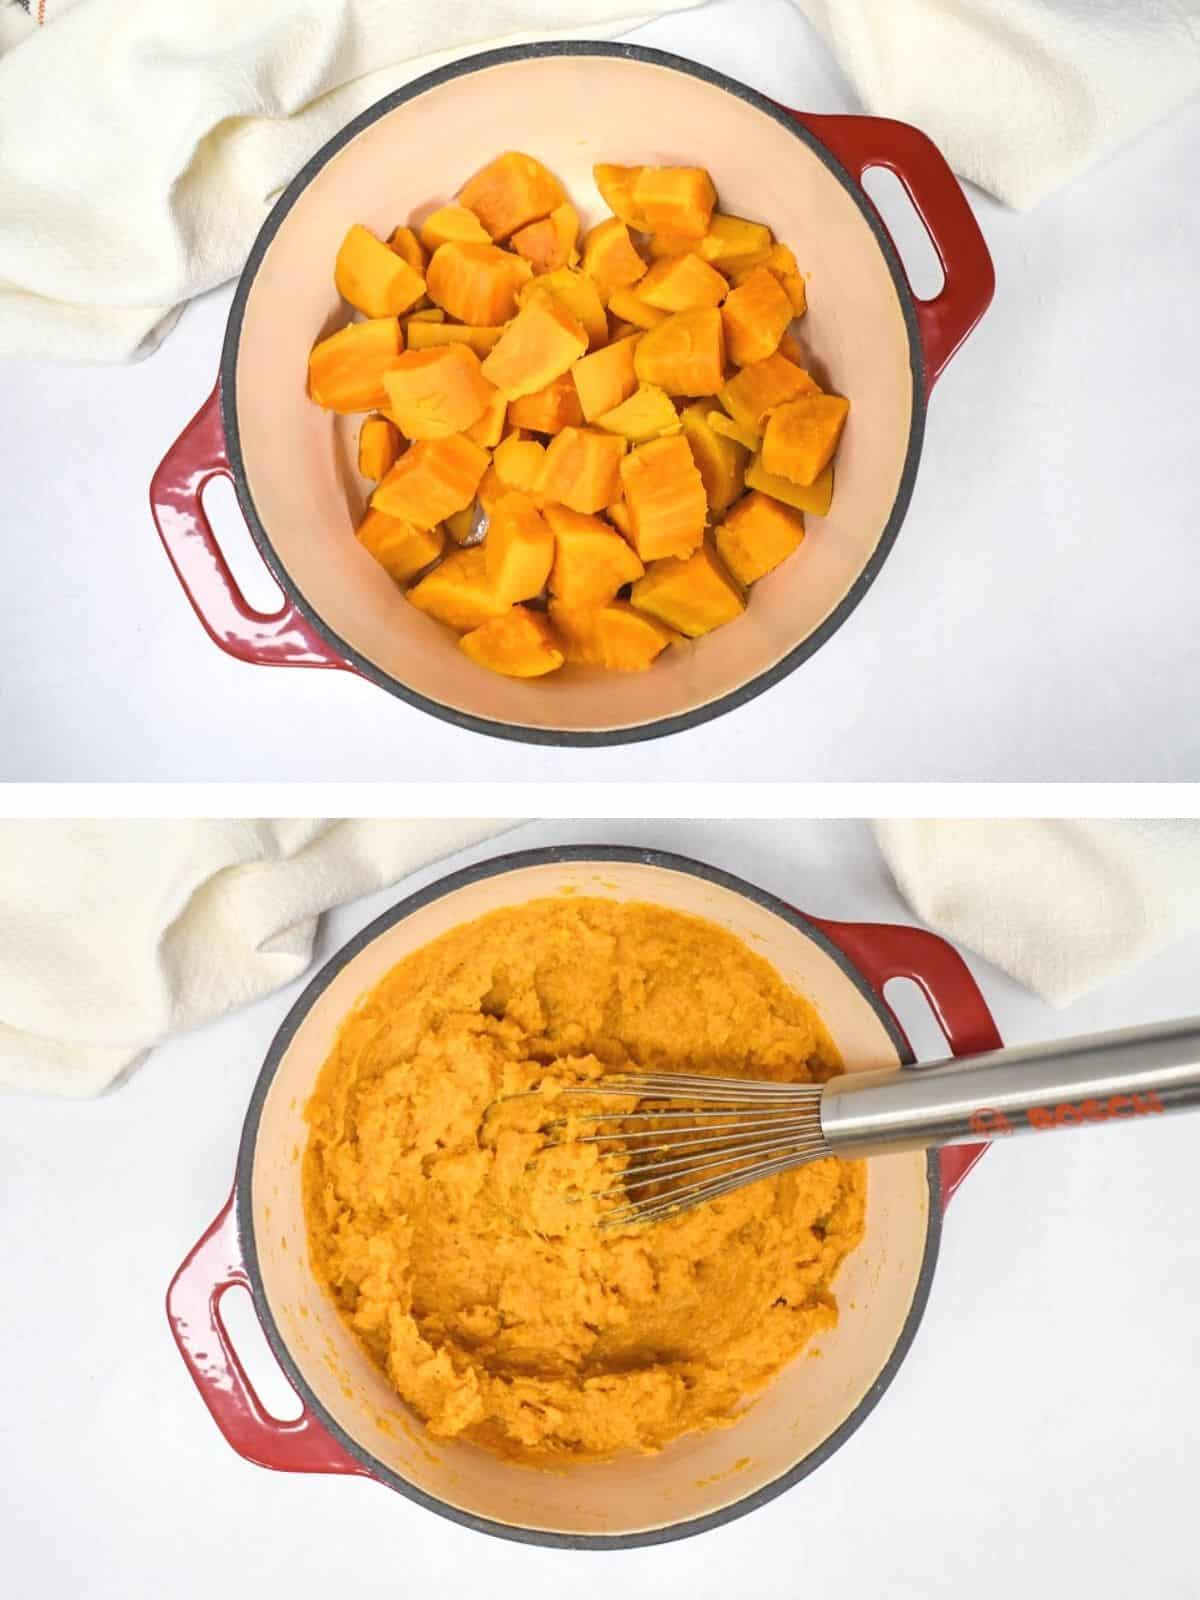 Two images showing the cooked sweet potatoes in a pot and after they are mashed with a whisk.